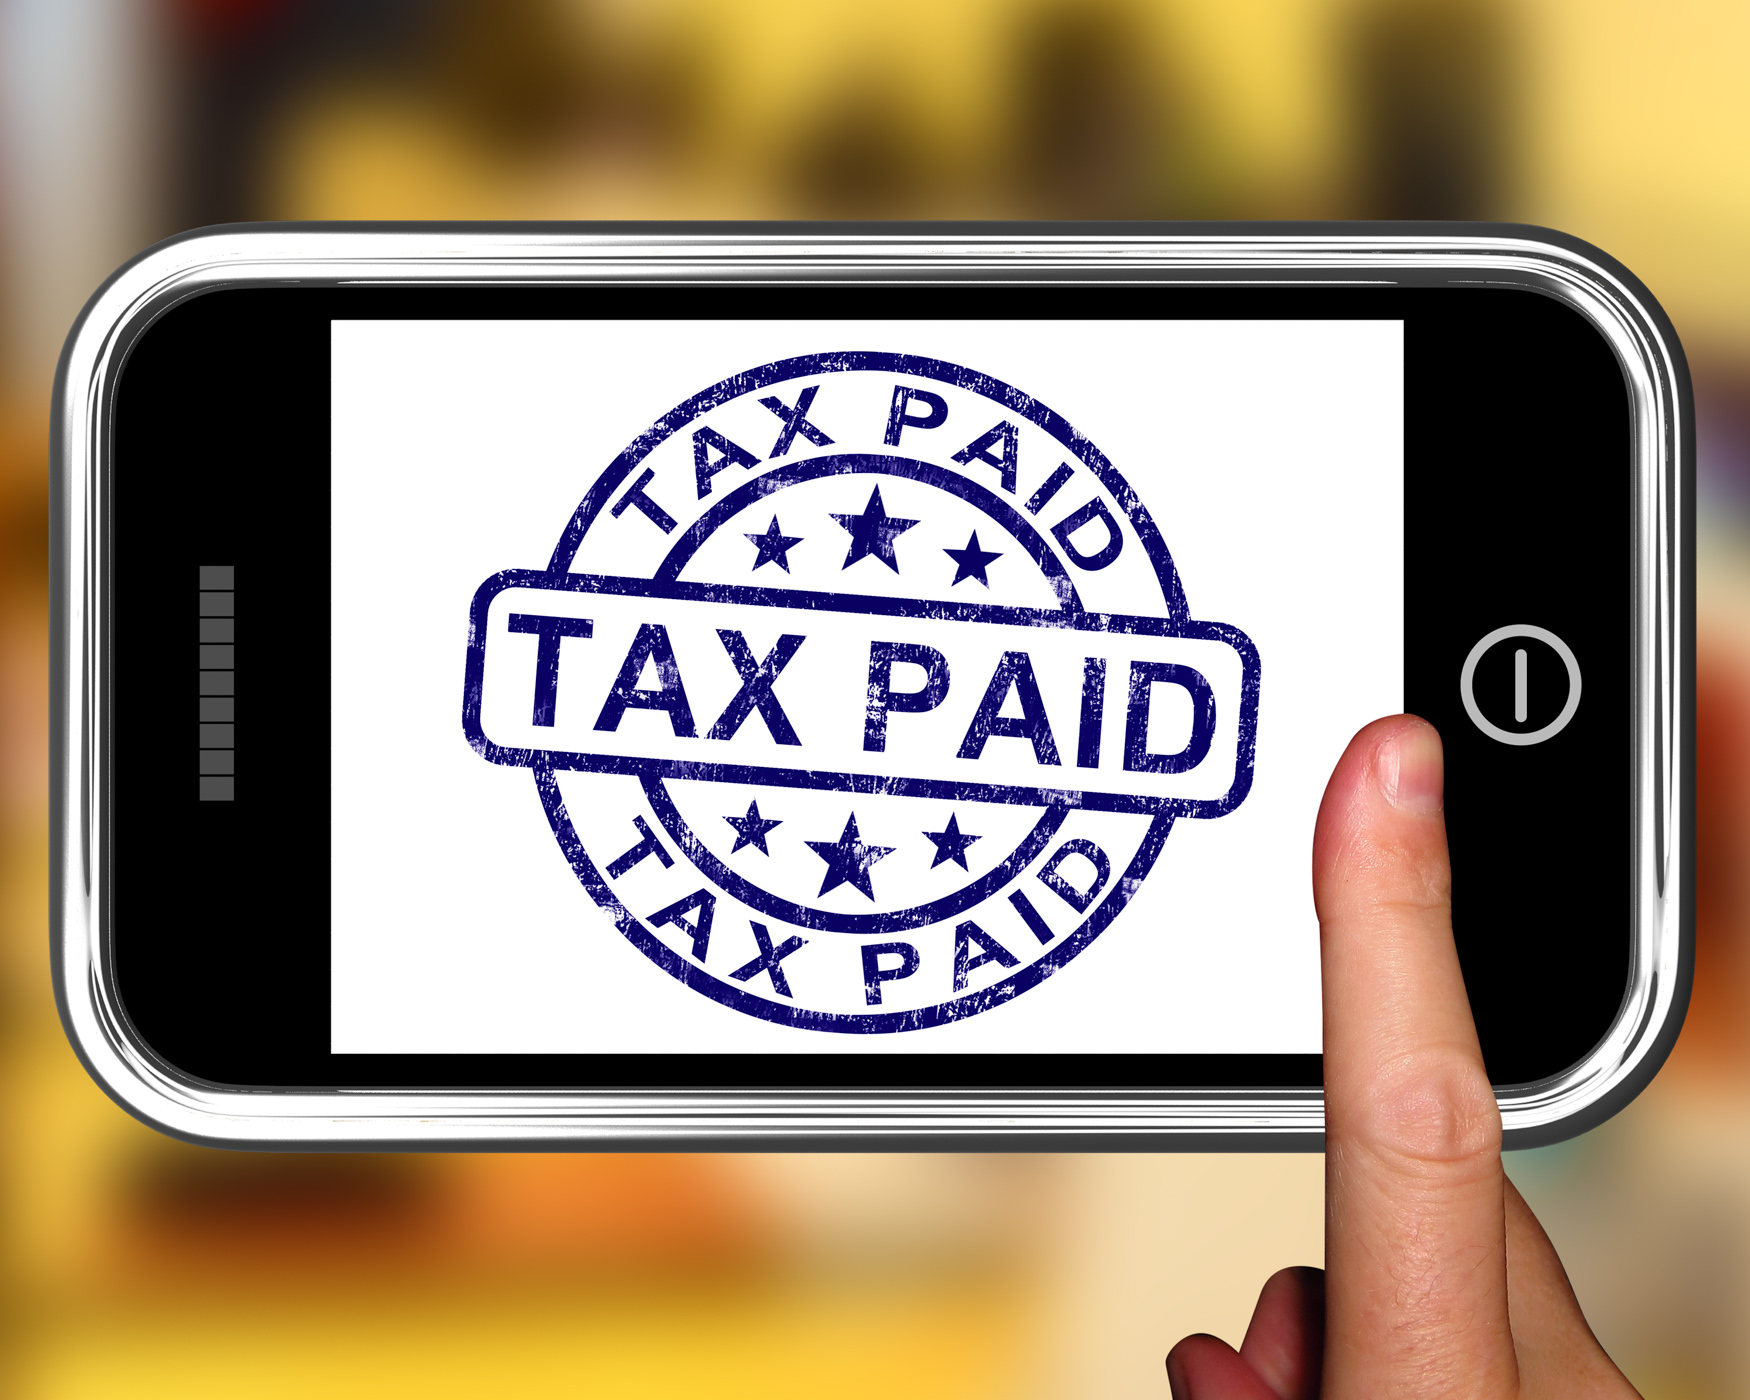 Tax paid on smartphone shows payment confirmation photo